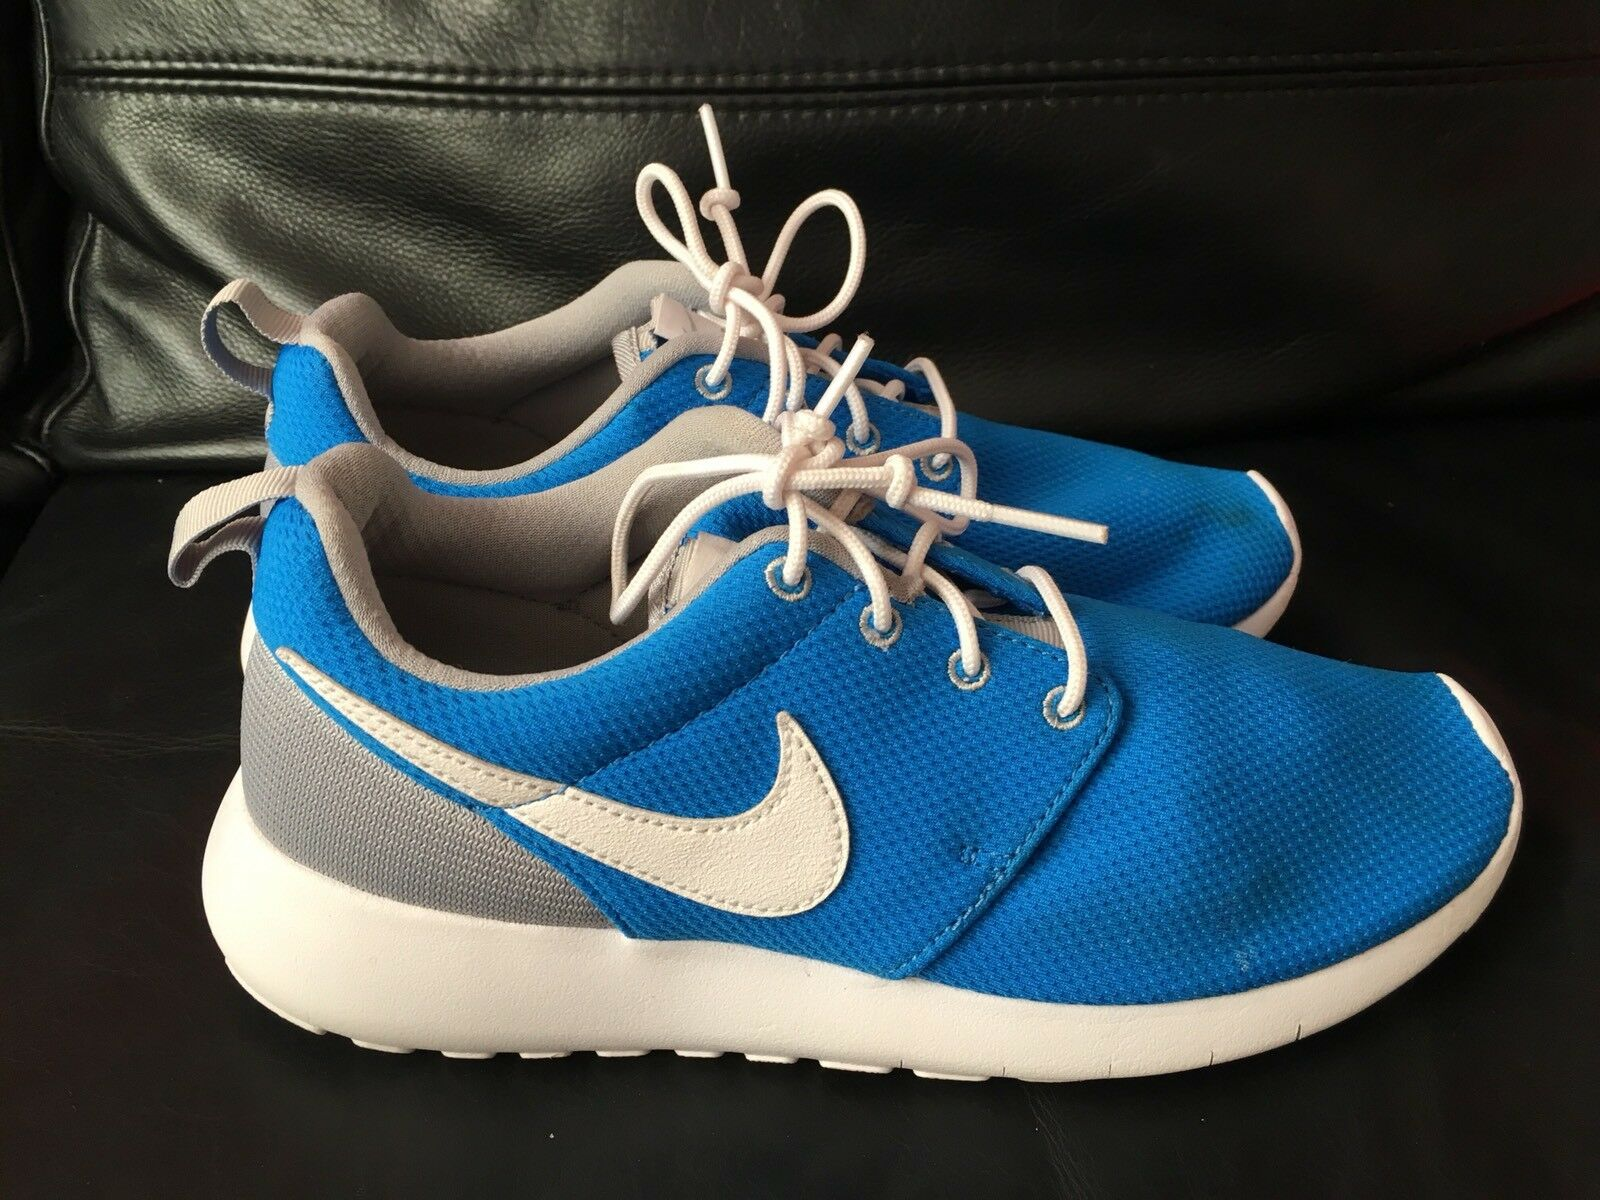 NIKE ROSHE RUN RUNNING SHOES TRAINERS BLUE SIZE